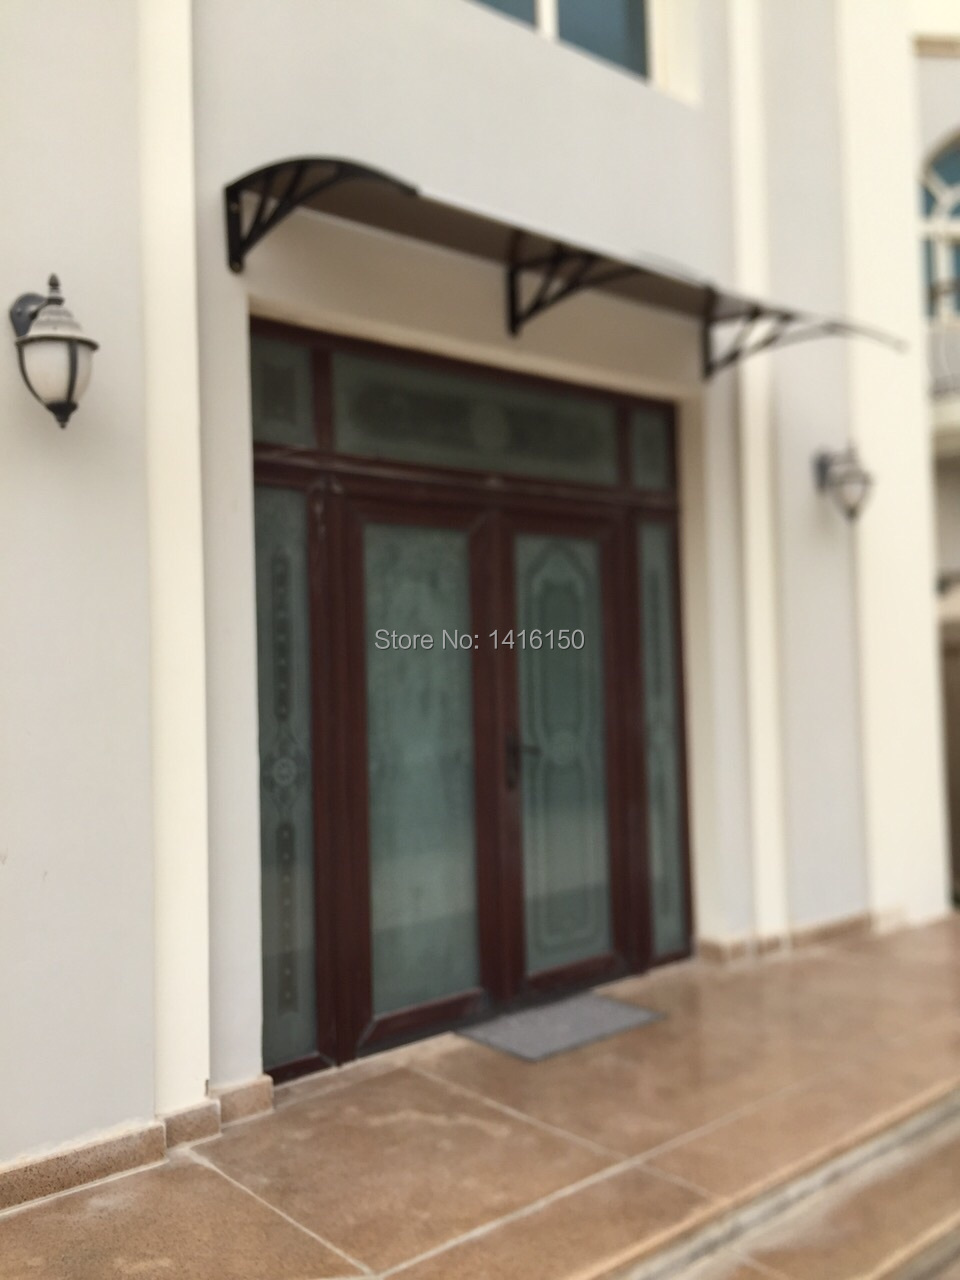 DS60300 P, 60x300cm,Depth:60cm, Width:300cm,Door Window Polycarbonate  Awnings Canopies In Awnings From Home U0026 Garden On Aliexpress.com | Alibaba  Group